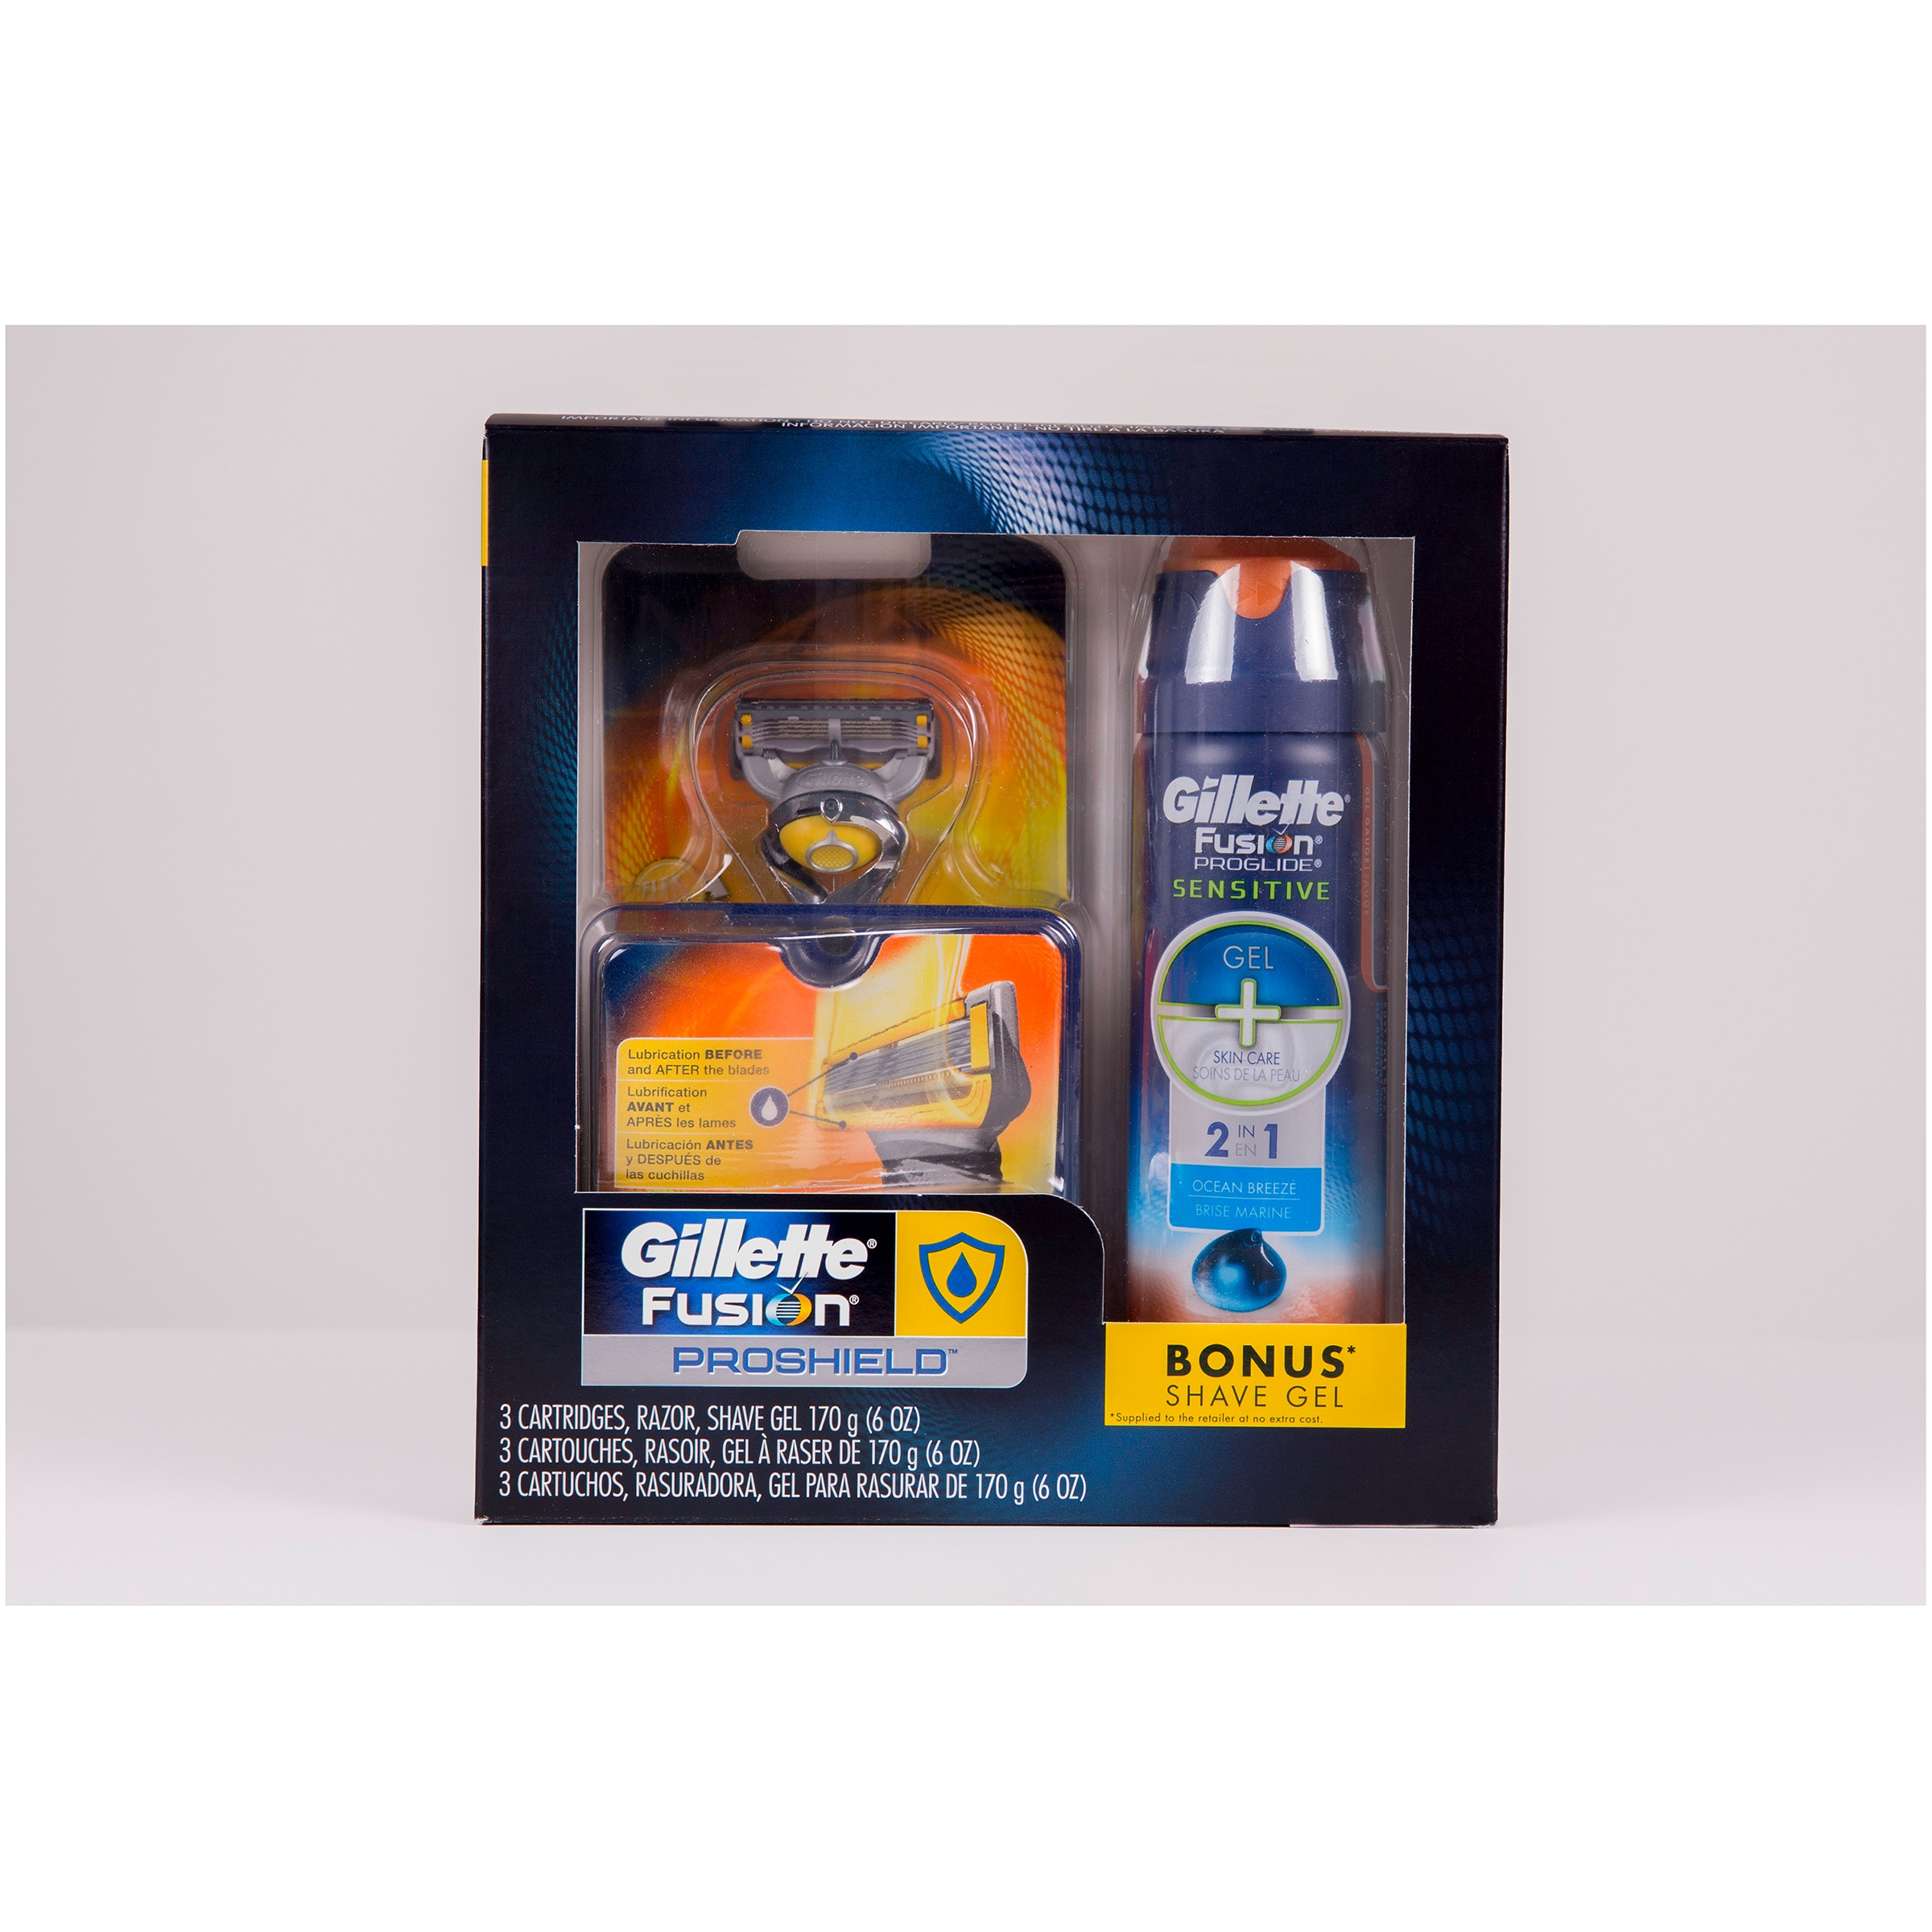 Gillette Fusion ProShield Regimen Pack, Contains 1 Razor, 3 Cartridges and 1 Shave Gel